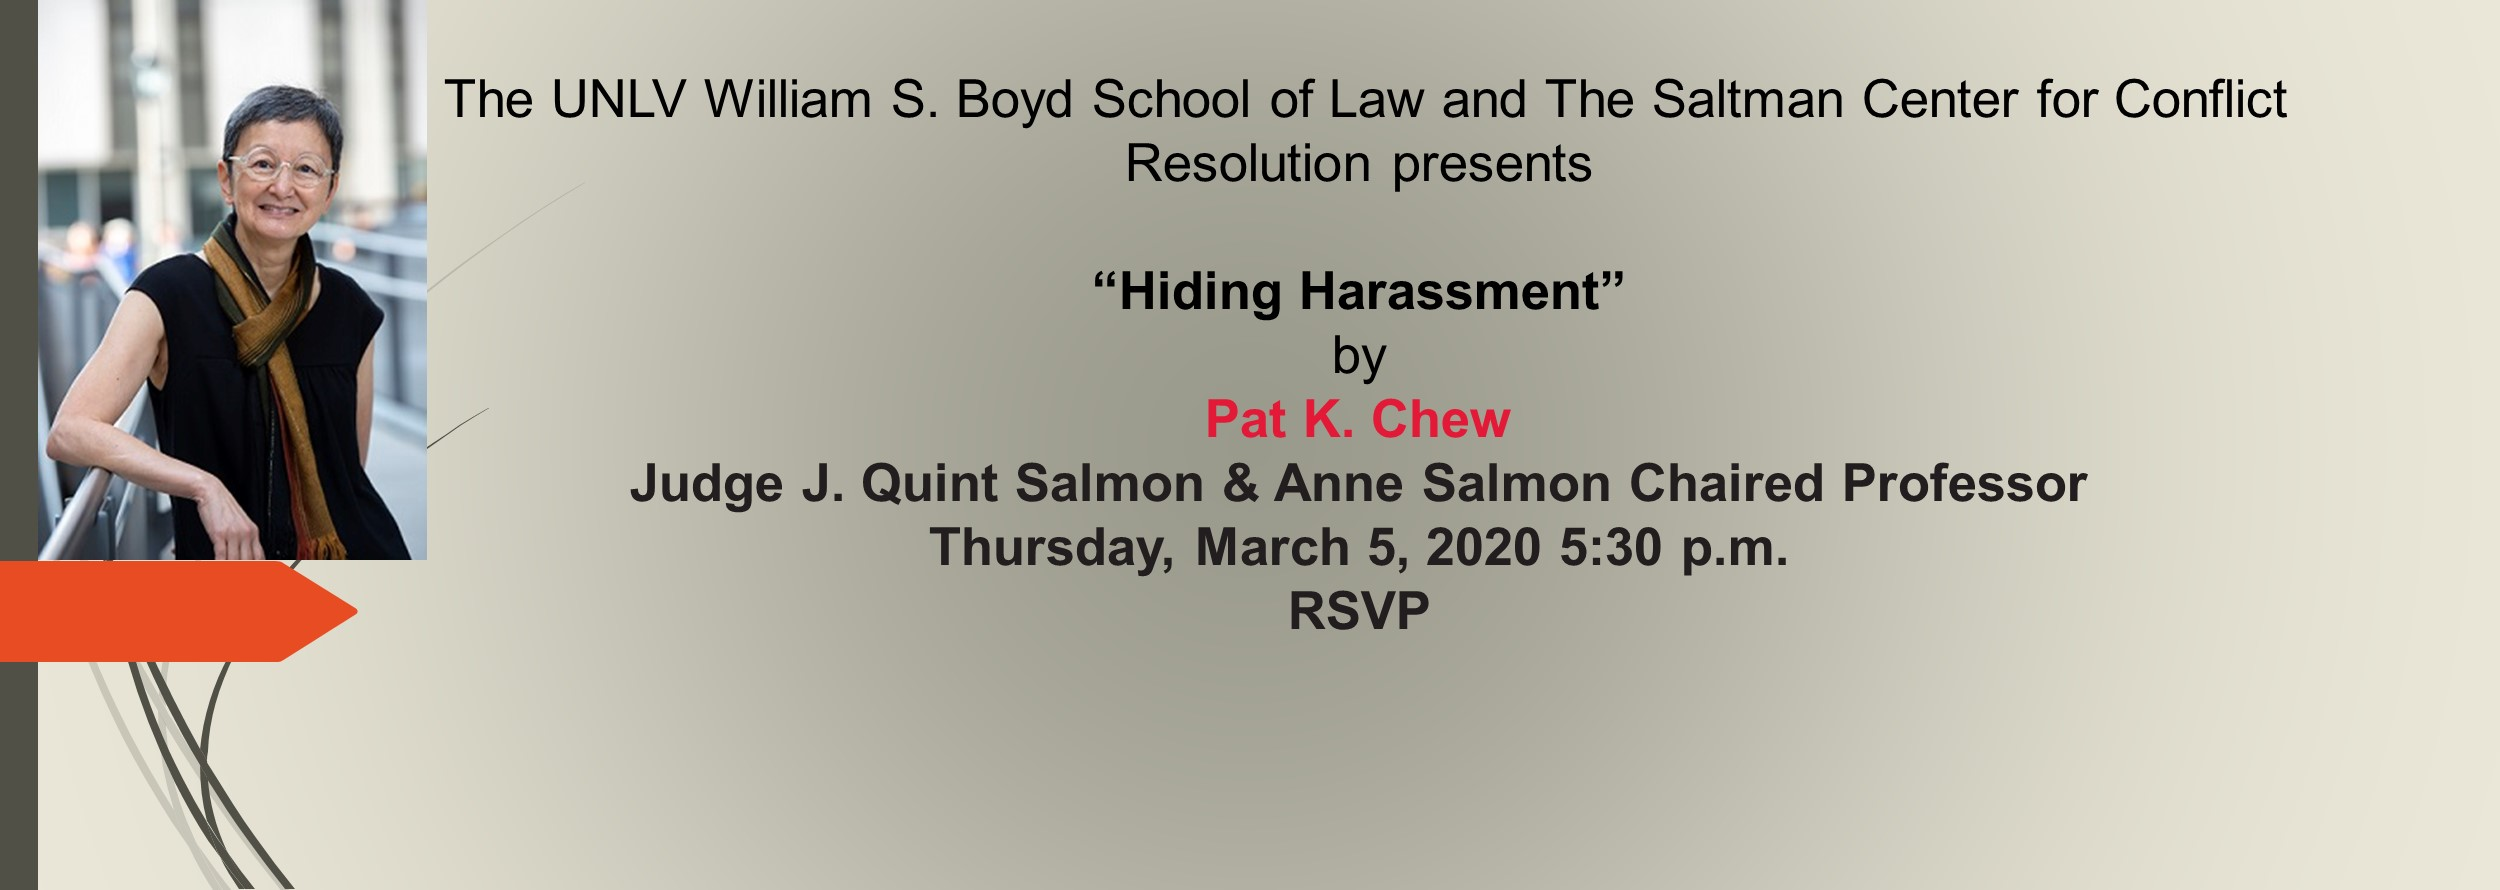 Hiding Harassment by Pat K. Chew